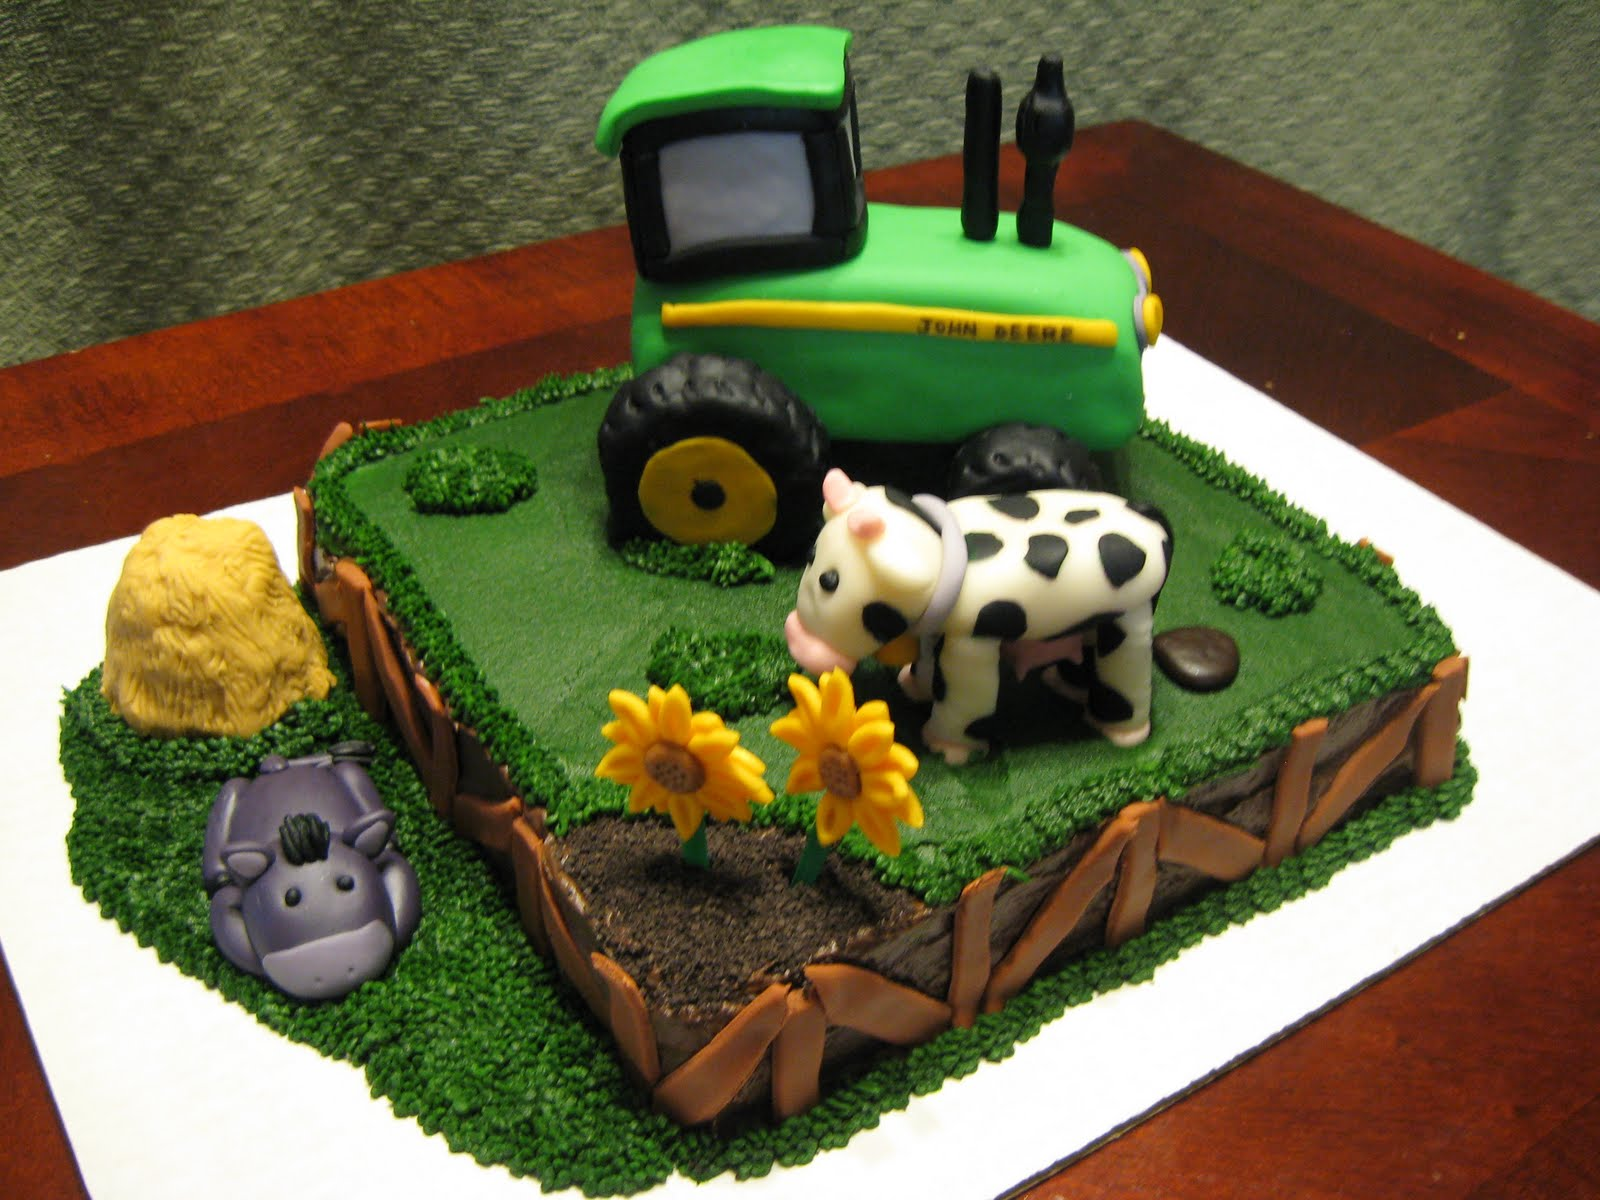 Delectable Sweets By The Smiths John Deere Farm Cake